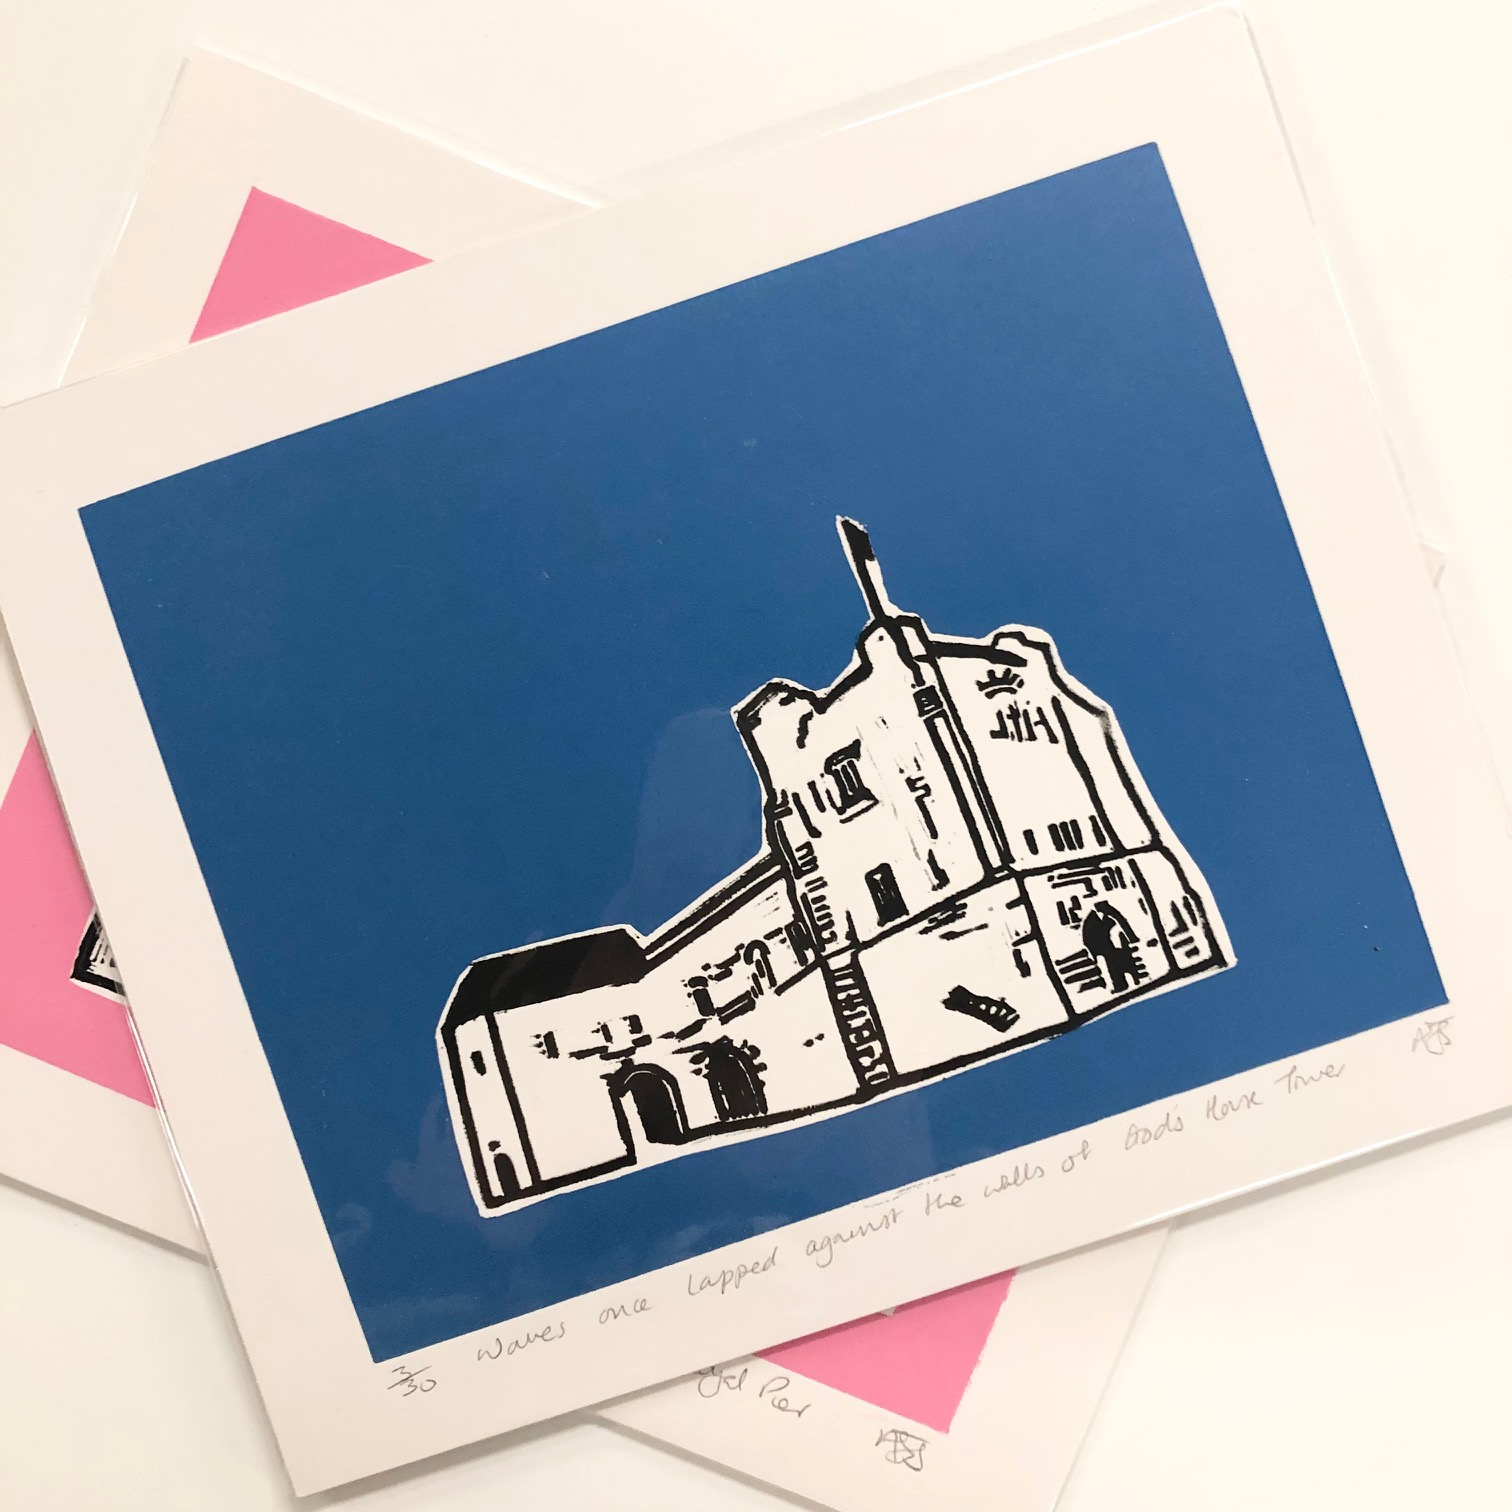 GHT 'Pop' Print by Mandy Smith